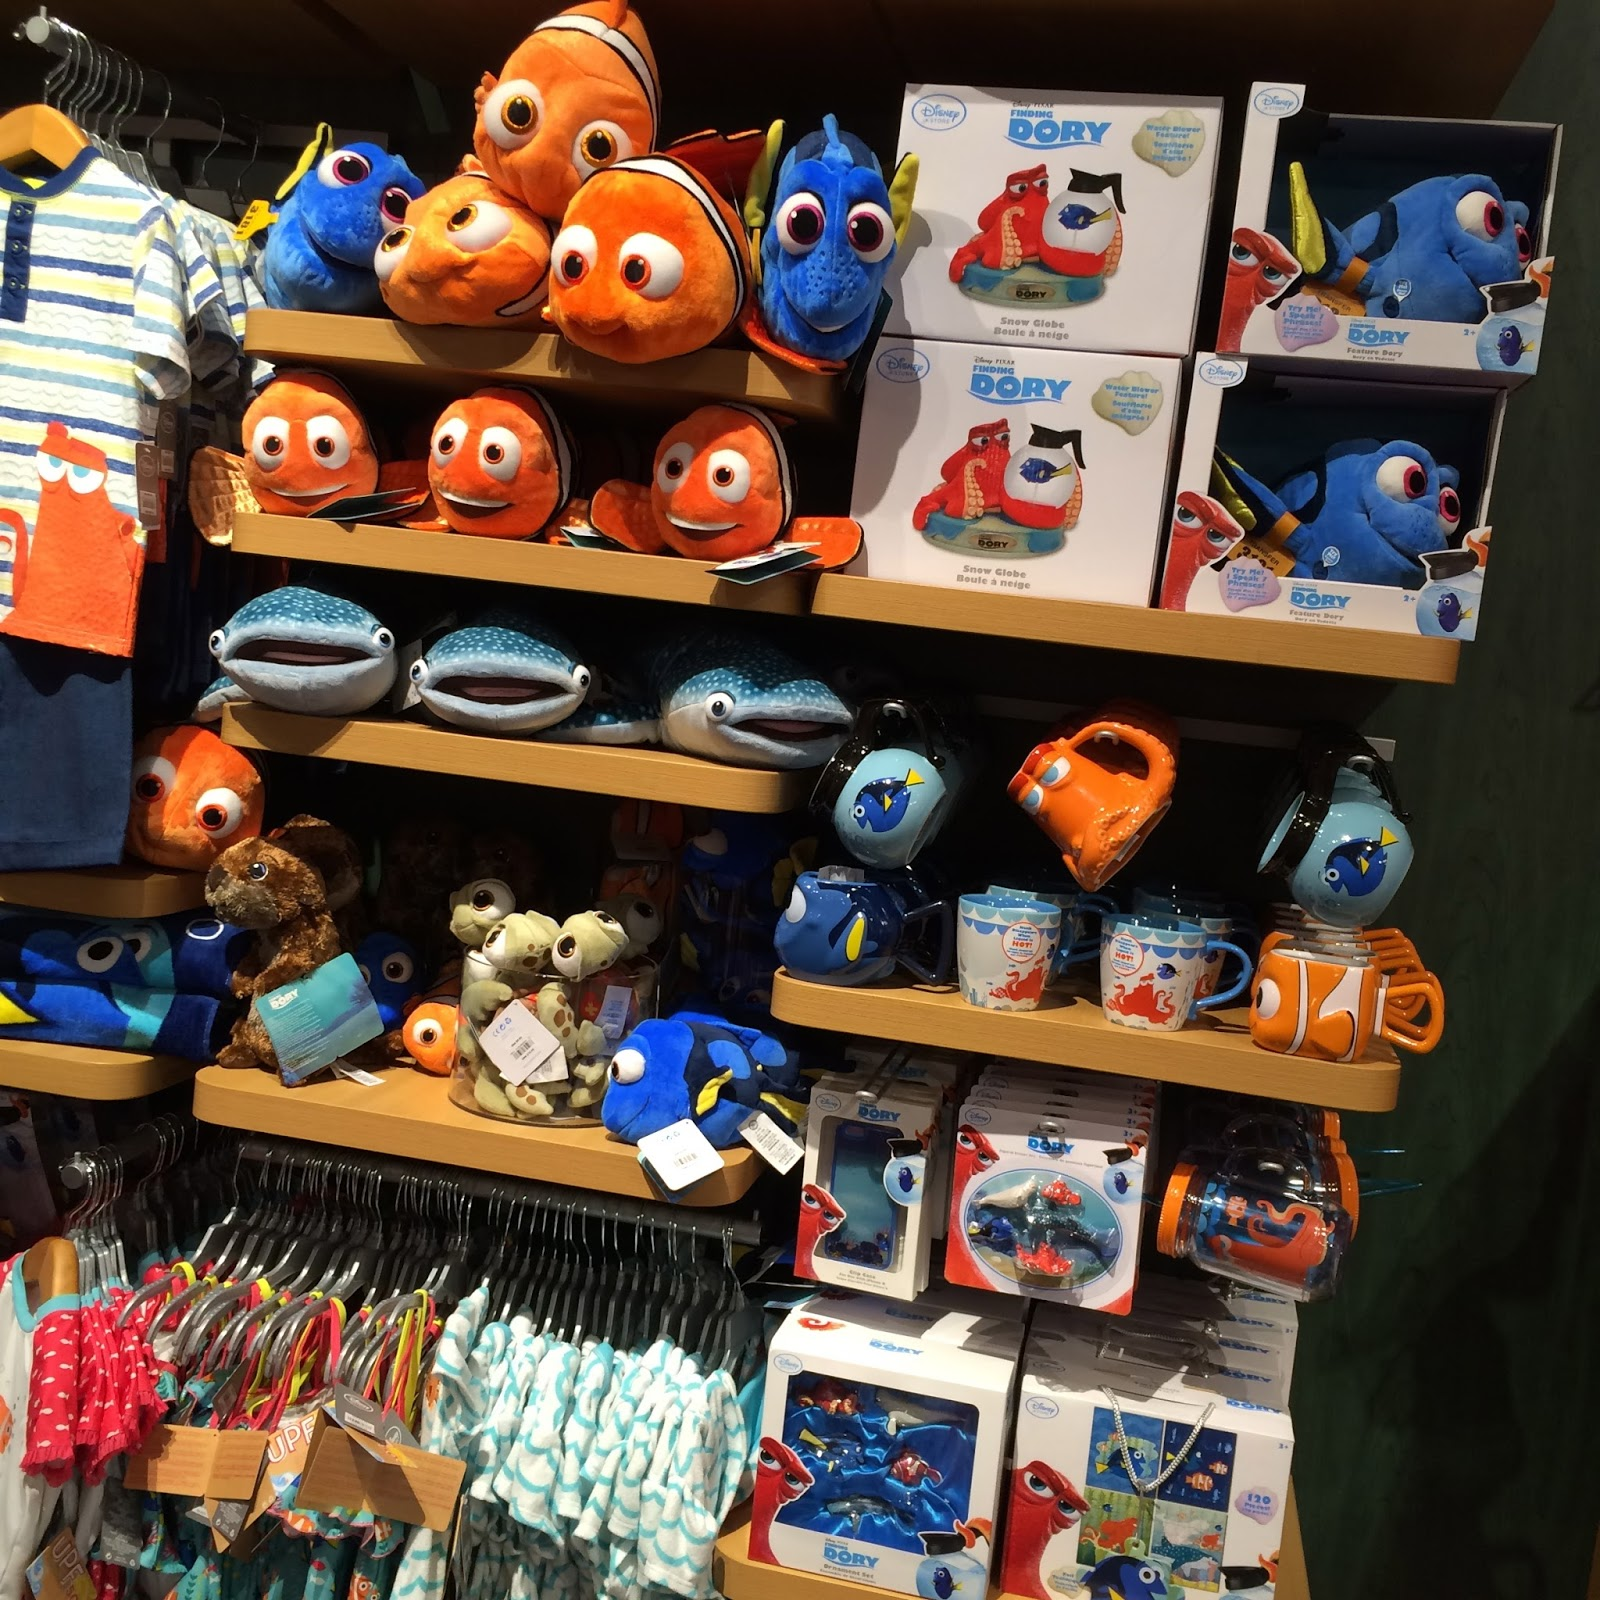 Yarr Store Kids Pool Toys, 4 Pcs Disney Finding Dory Nemo Baby Bath Squirt Toys for Kids Water Play Catch Game. by Yarr Store. $ $ 9 99 Prime. FREE Shipping on eligible orders. Product Features Fill up your fish friends with water, give a squeeze the toys to squirt water.